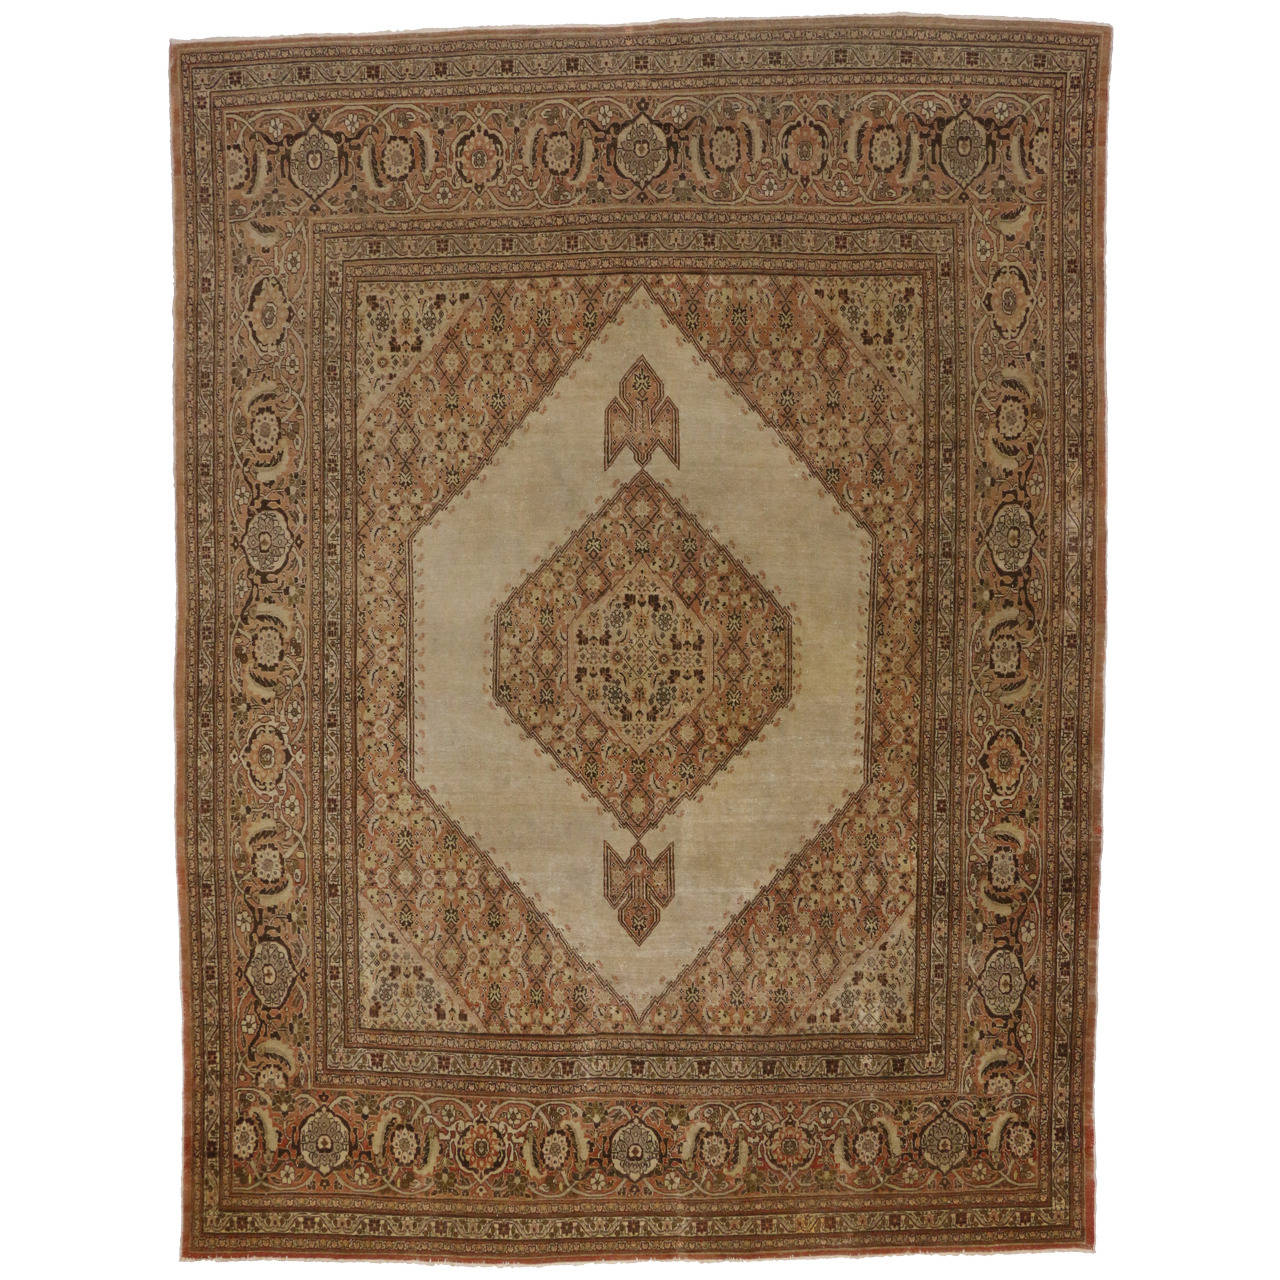 Haji khalili antique persian tabriz area rug with modern for Modern area rugs for sale